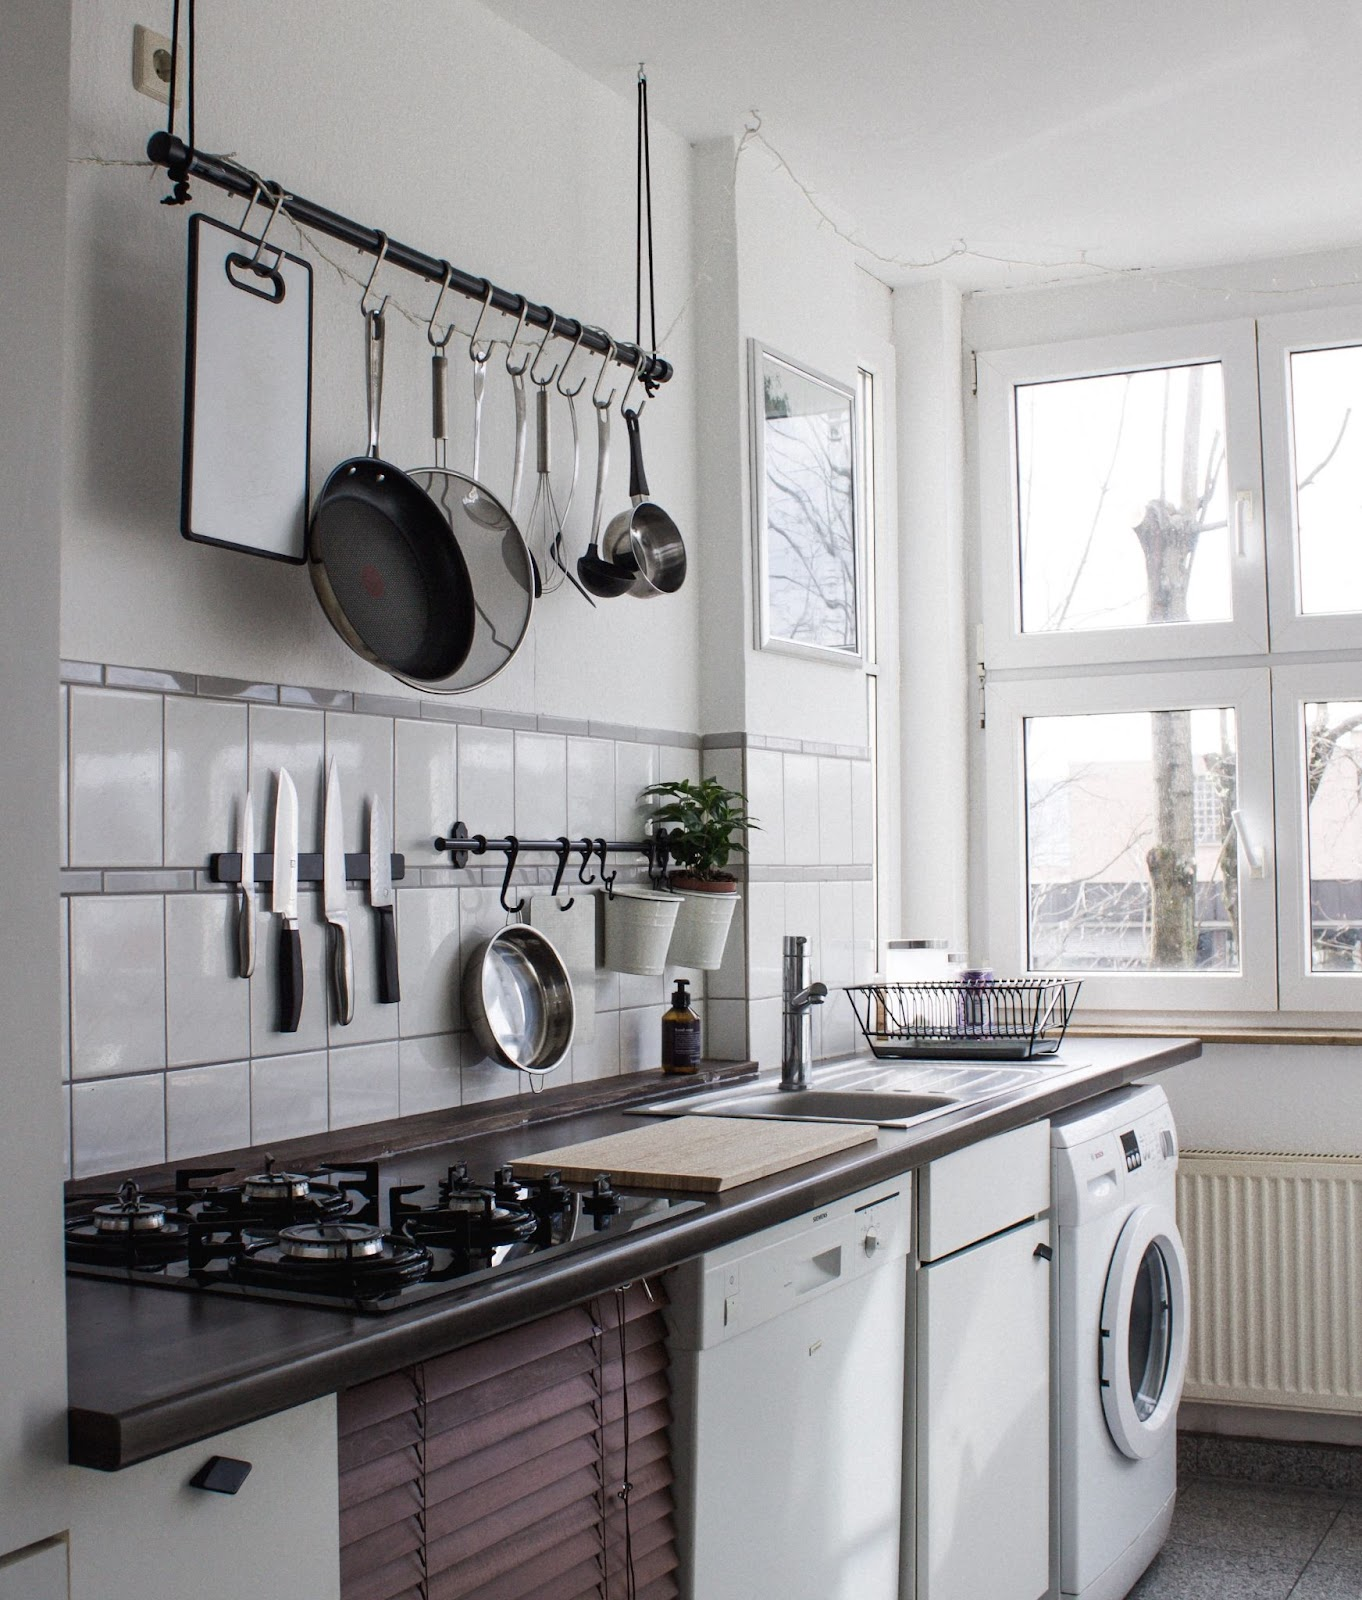 do less housework - keep surfaces clear